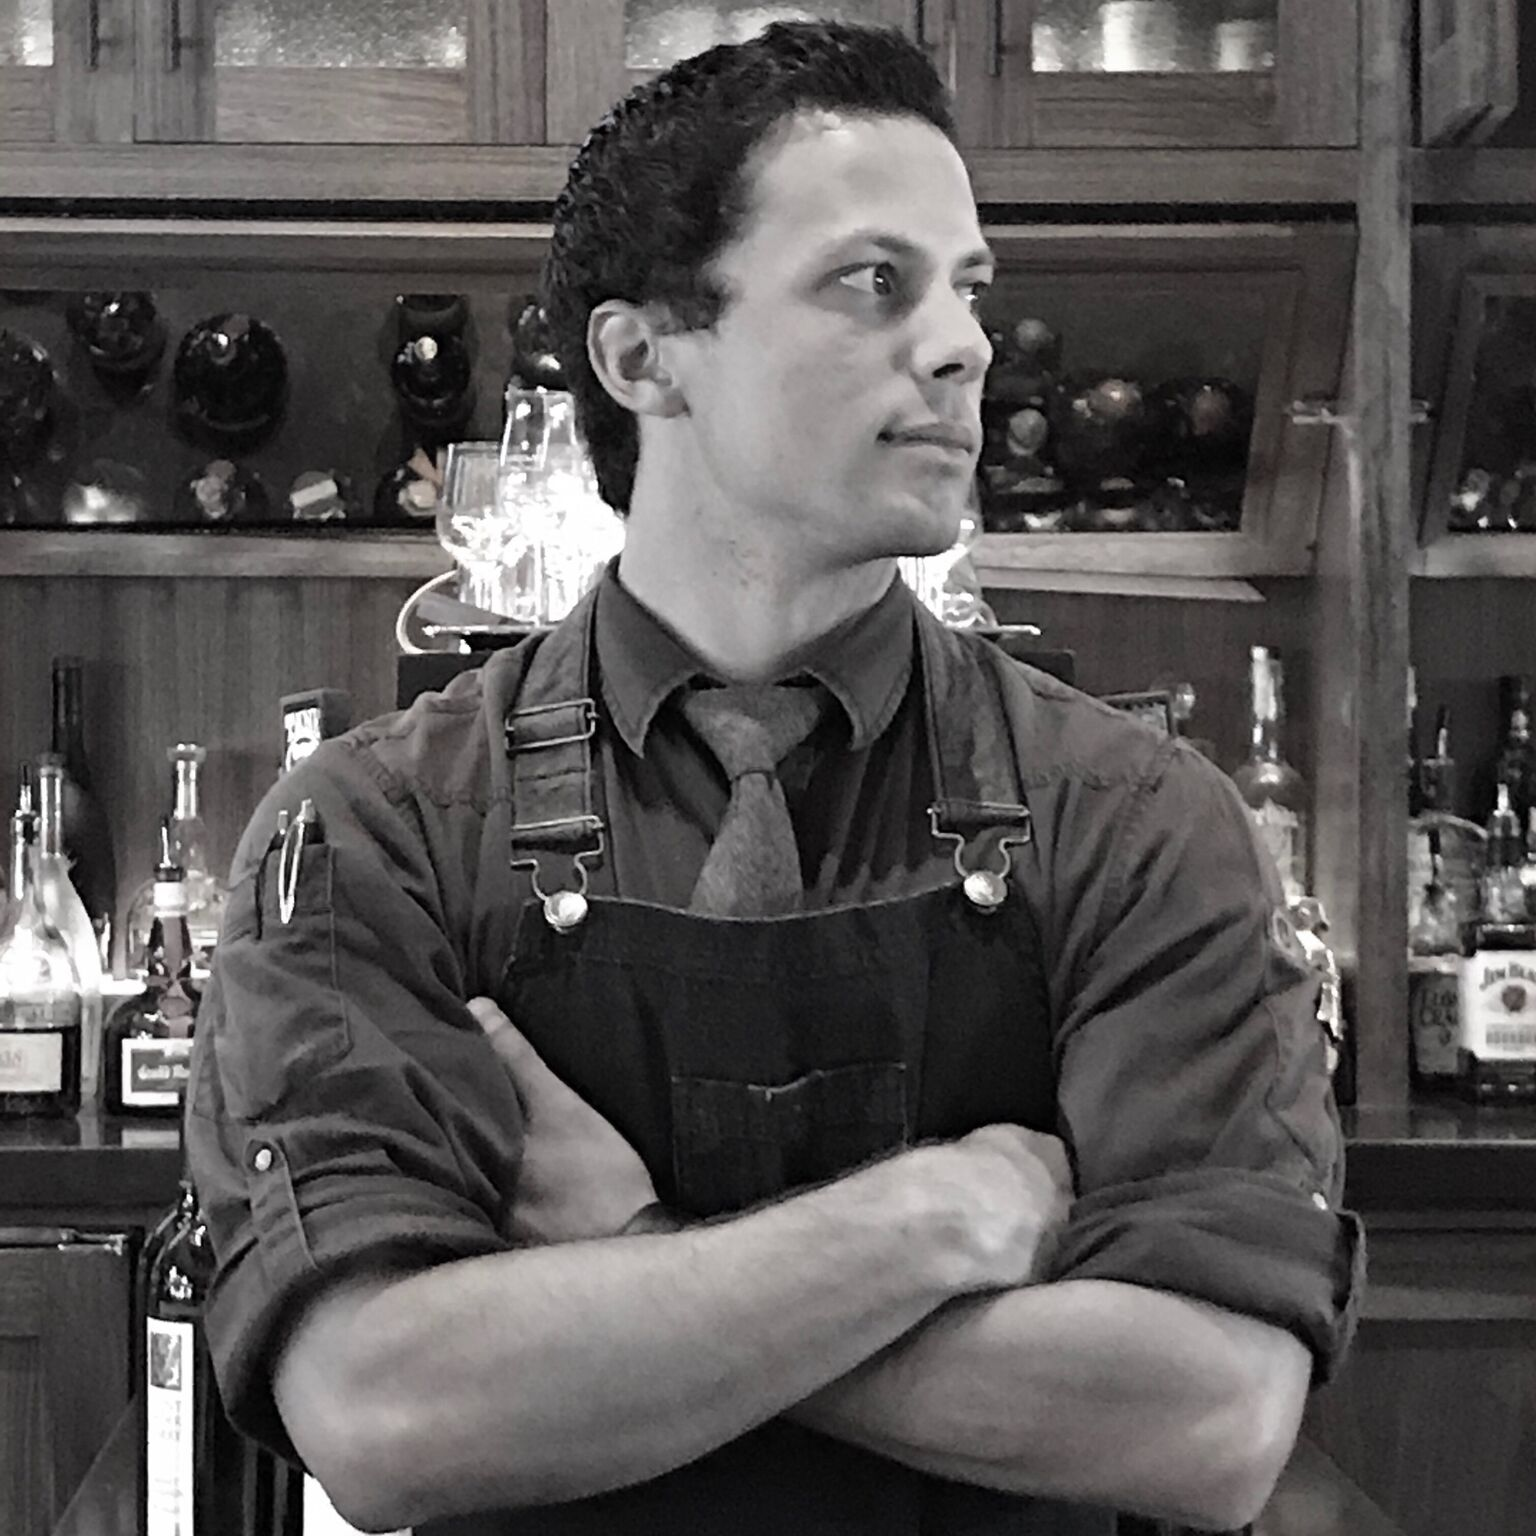 Black and white photo of Bartender Tanner Johnson standing in front of his bar with his arms crossed looking off camera.